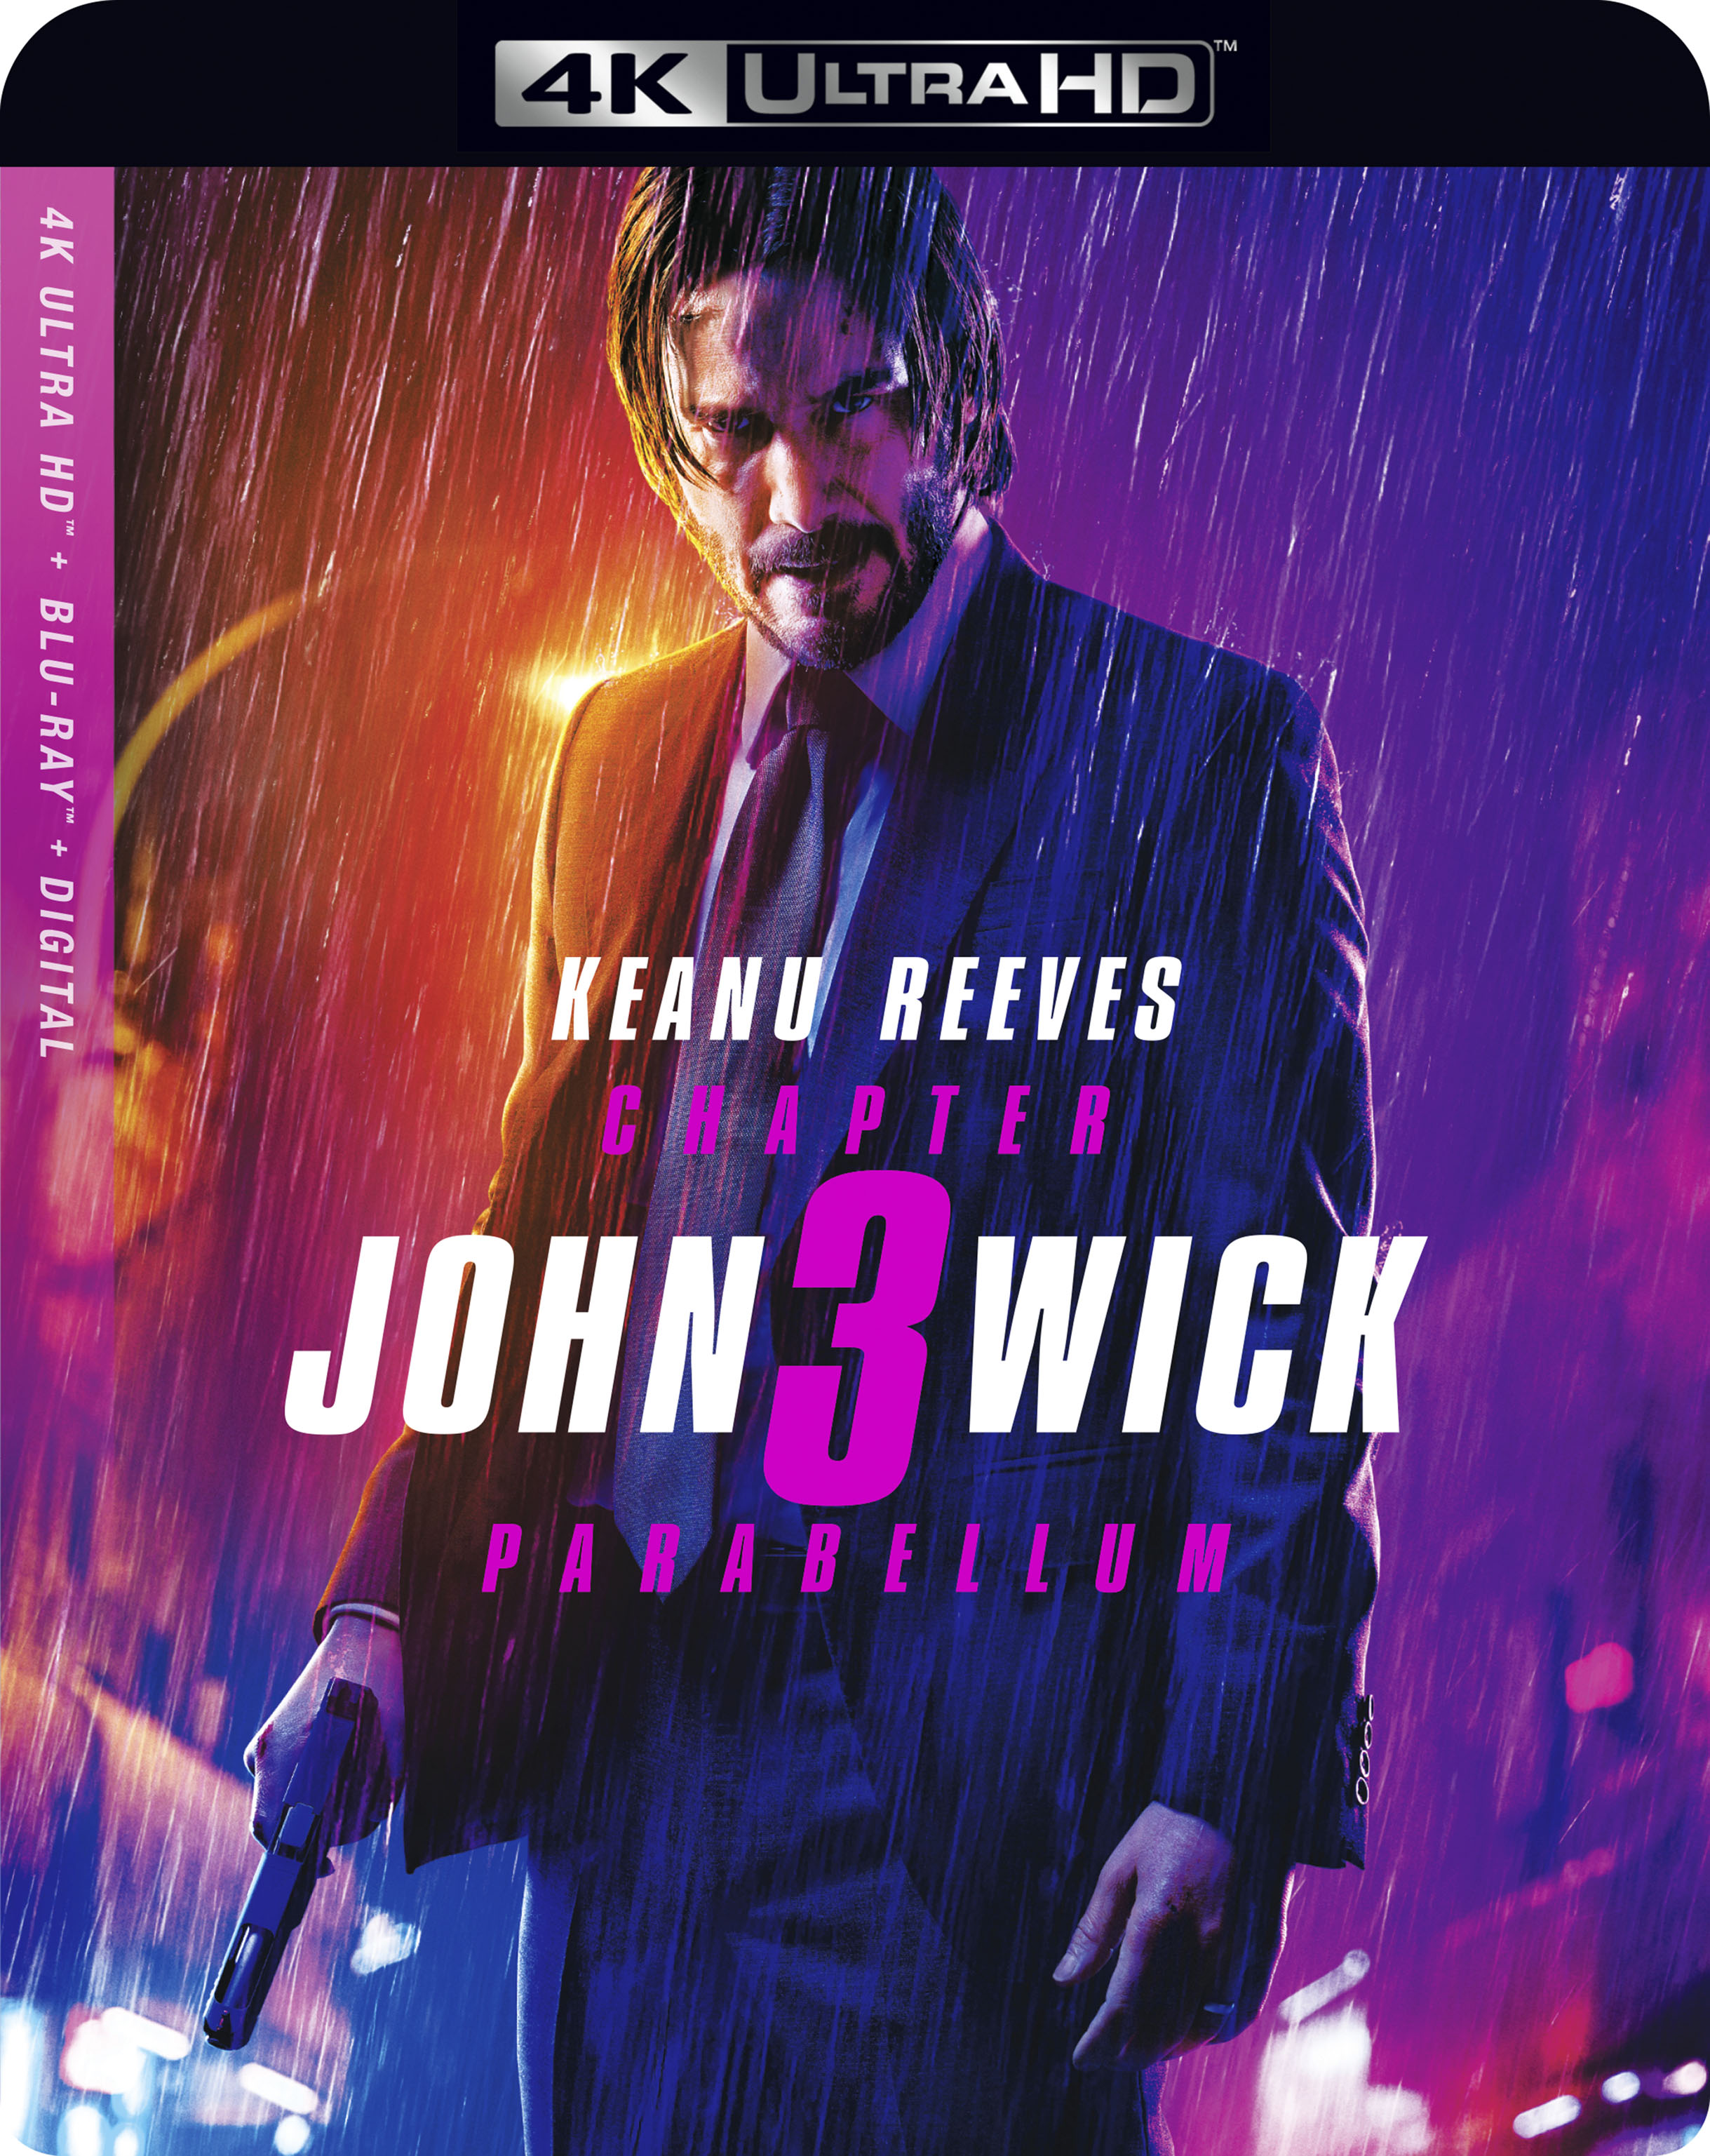 John Wick: Chapter 3 - Parabellum 2019 (4K ULTRA HD)